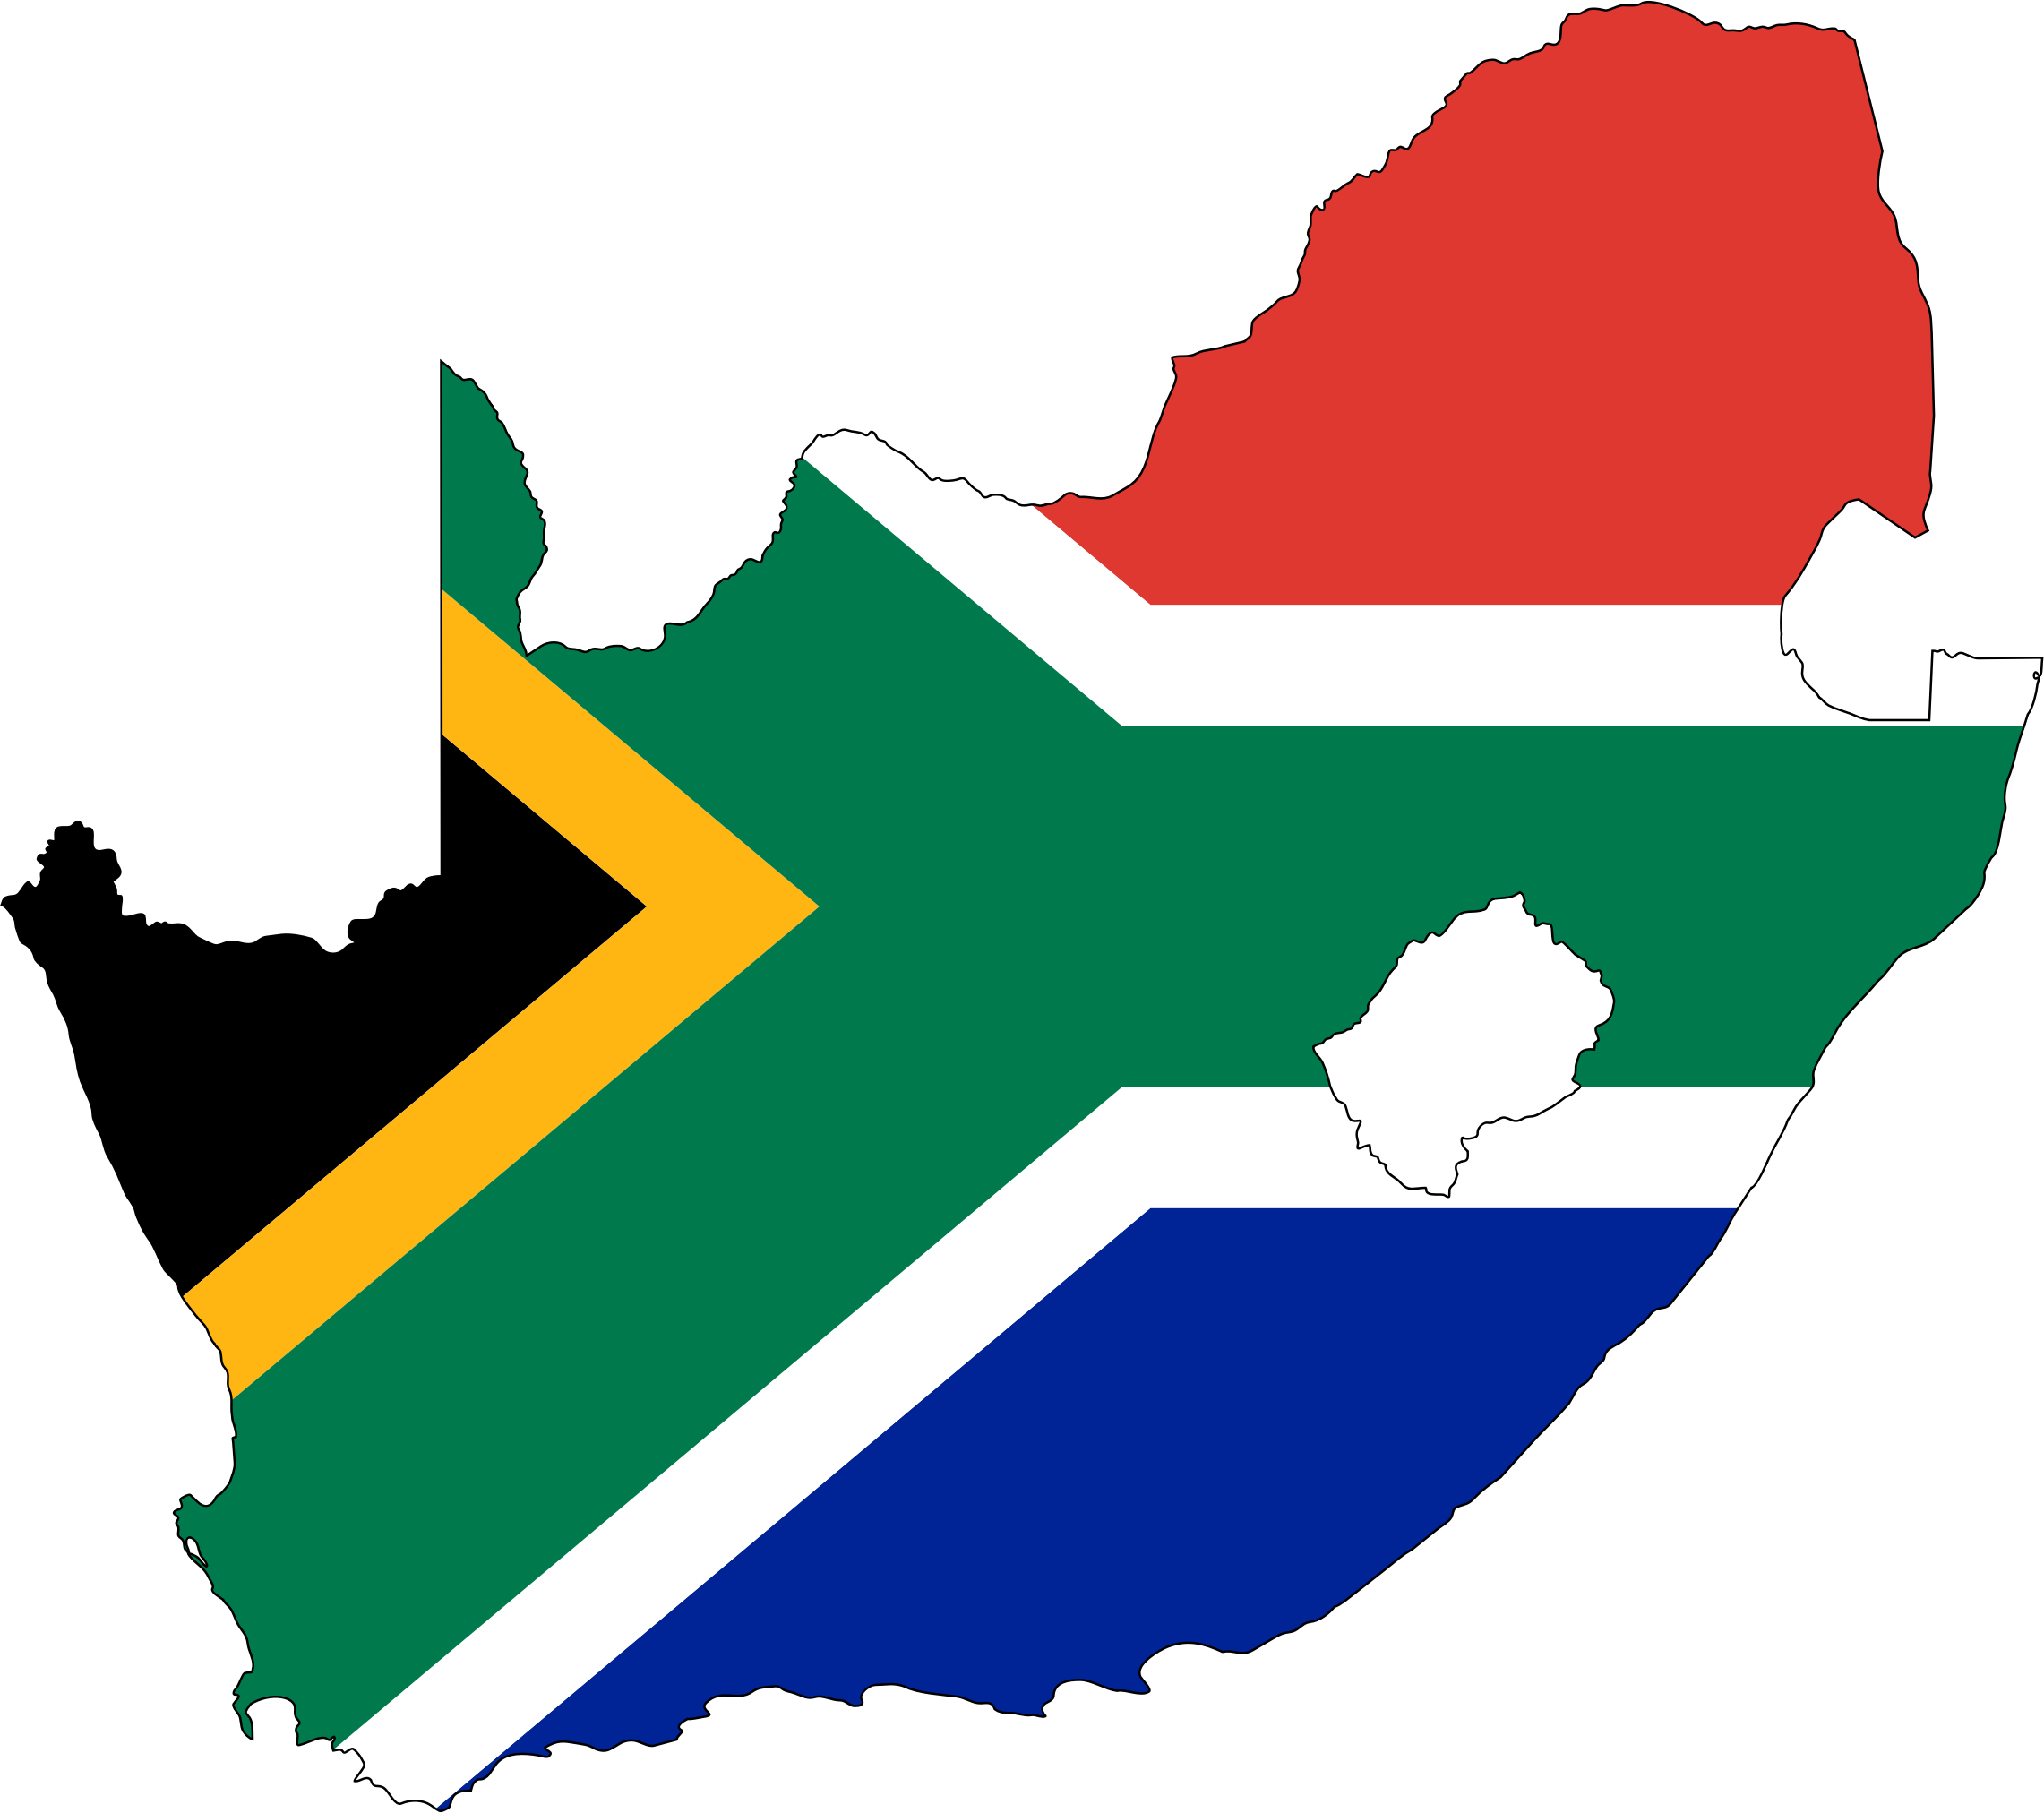 South flag map with. Africa png image image free stock